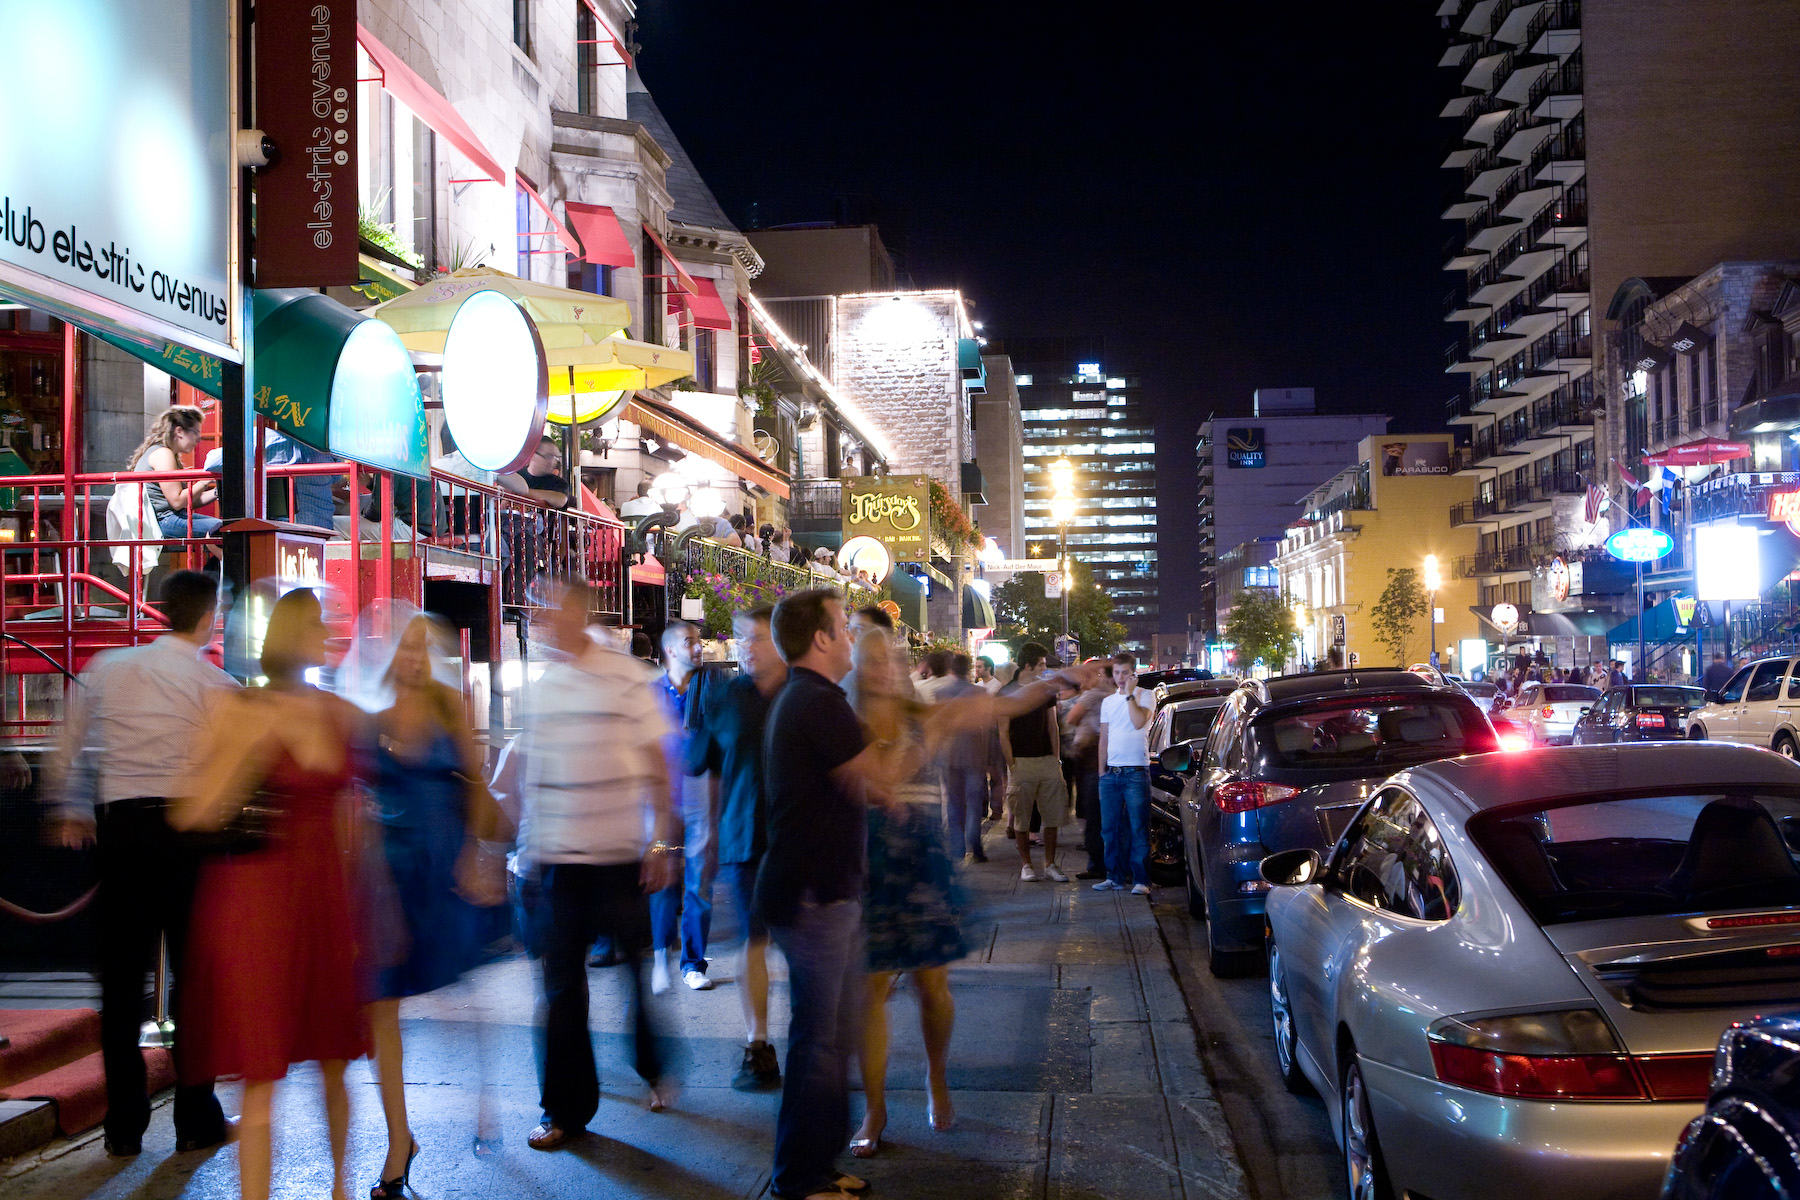 Hotels near Montreal Nightlife